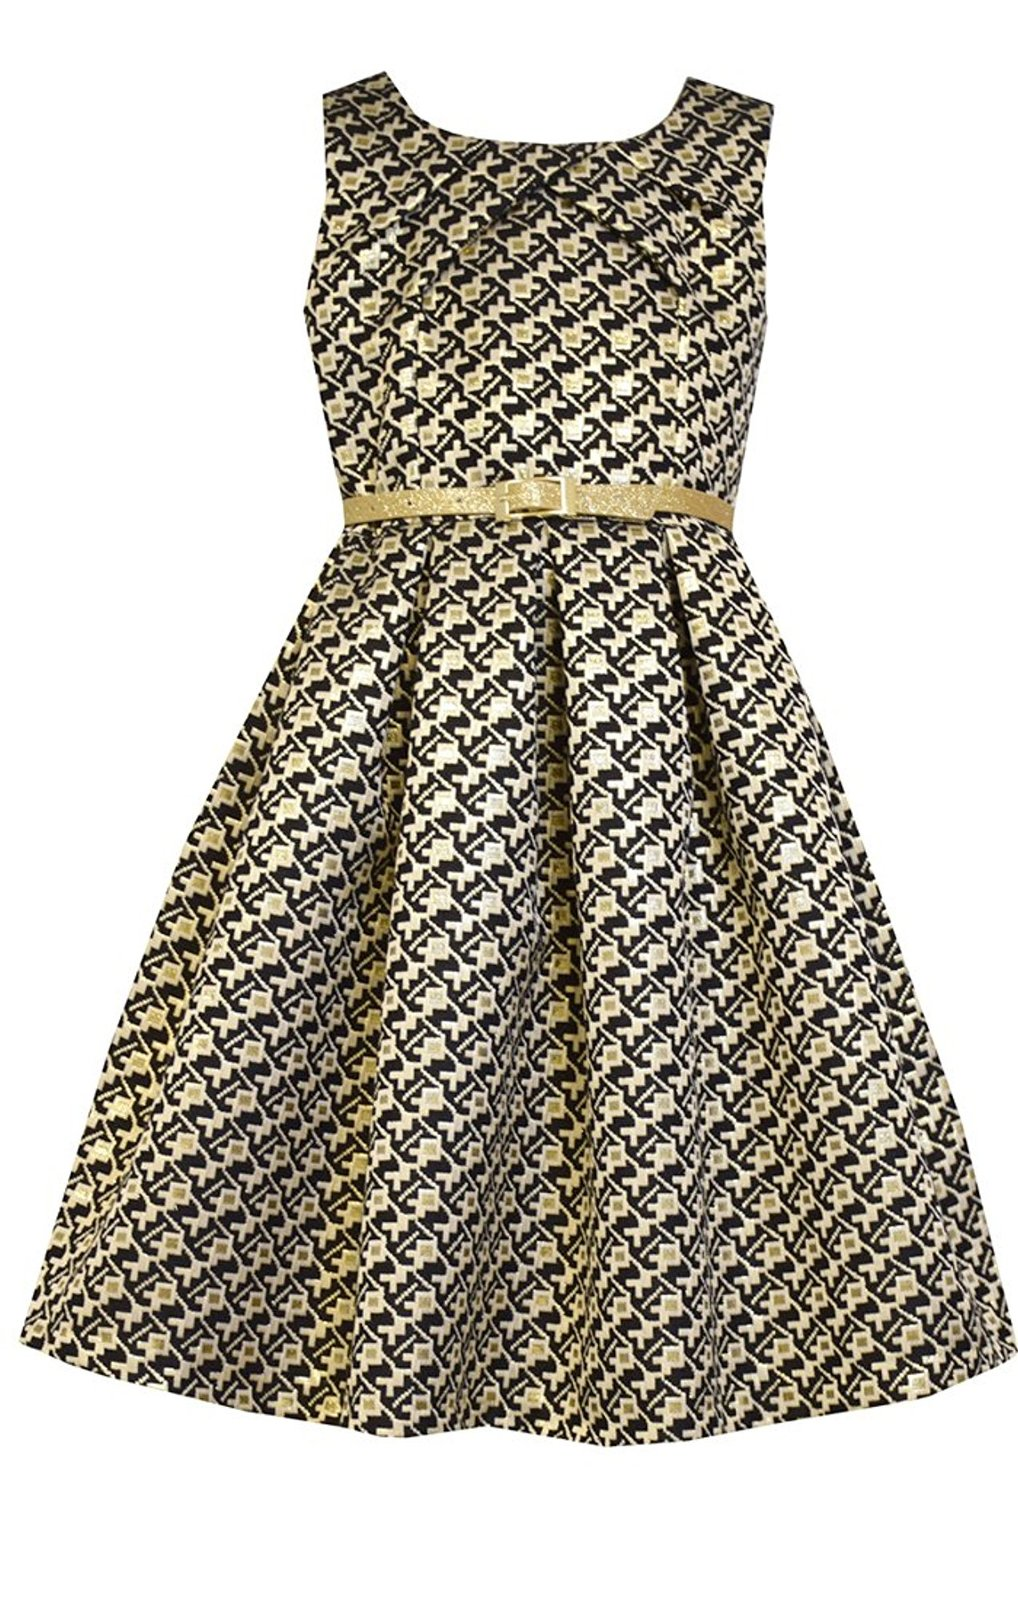 Little Girl Metallic Geometric Brocade Social Party Dress